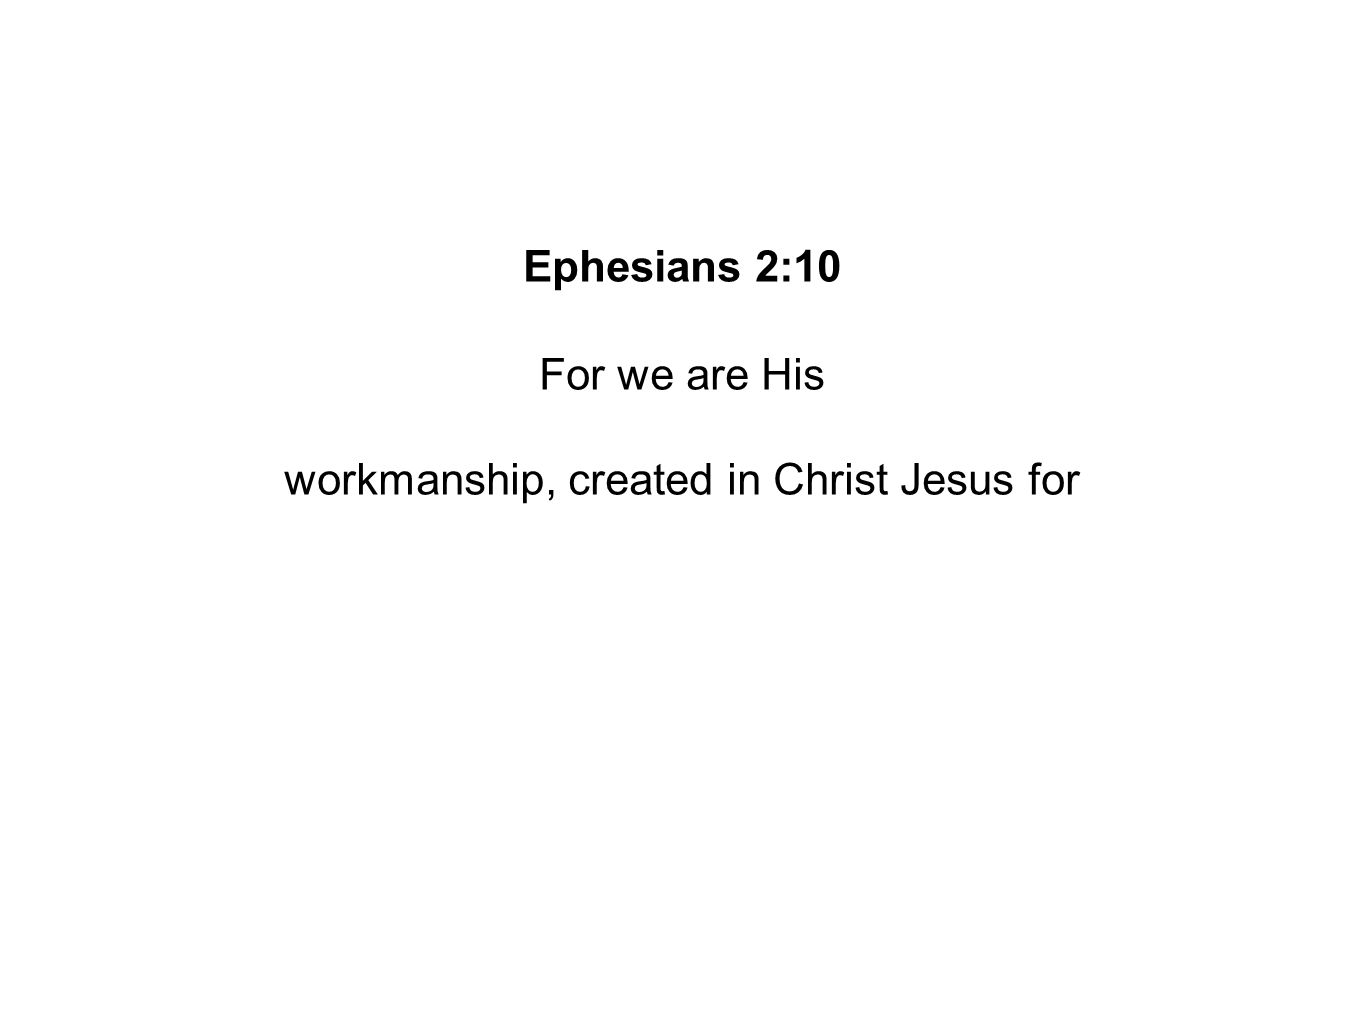 Ephesians 2:10 For we are His workmanship, created in Christ Jesus for